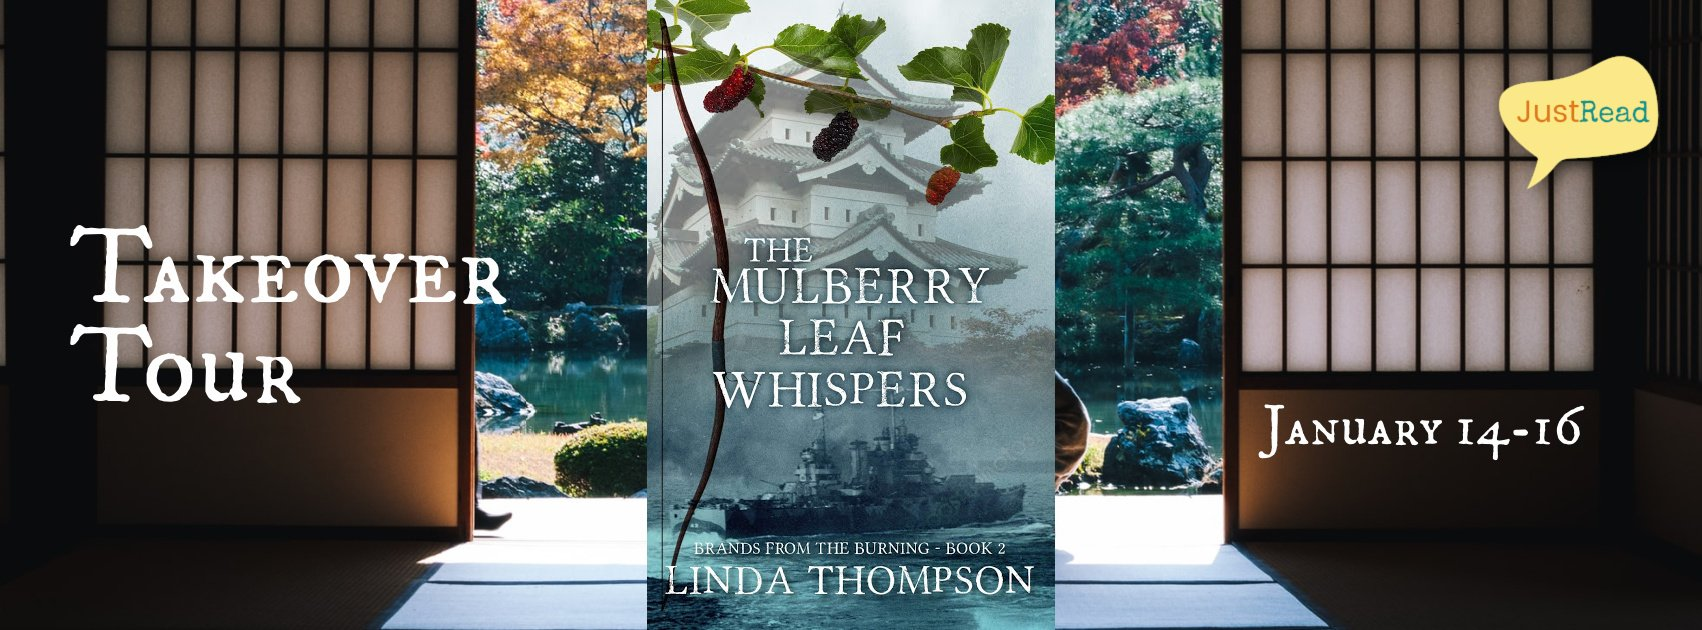 Welcome to The Mulberry Leaf Whispers Takeover Tour & Giveaway!